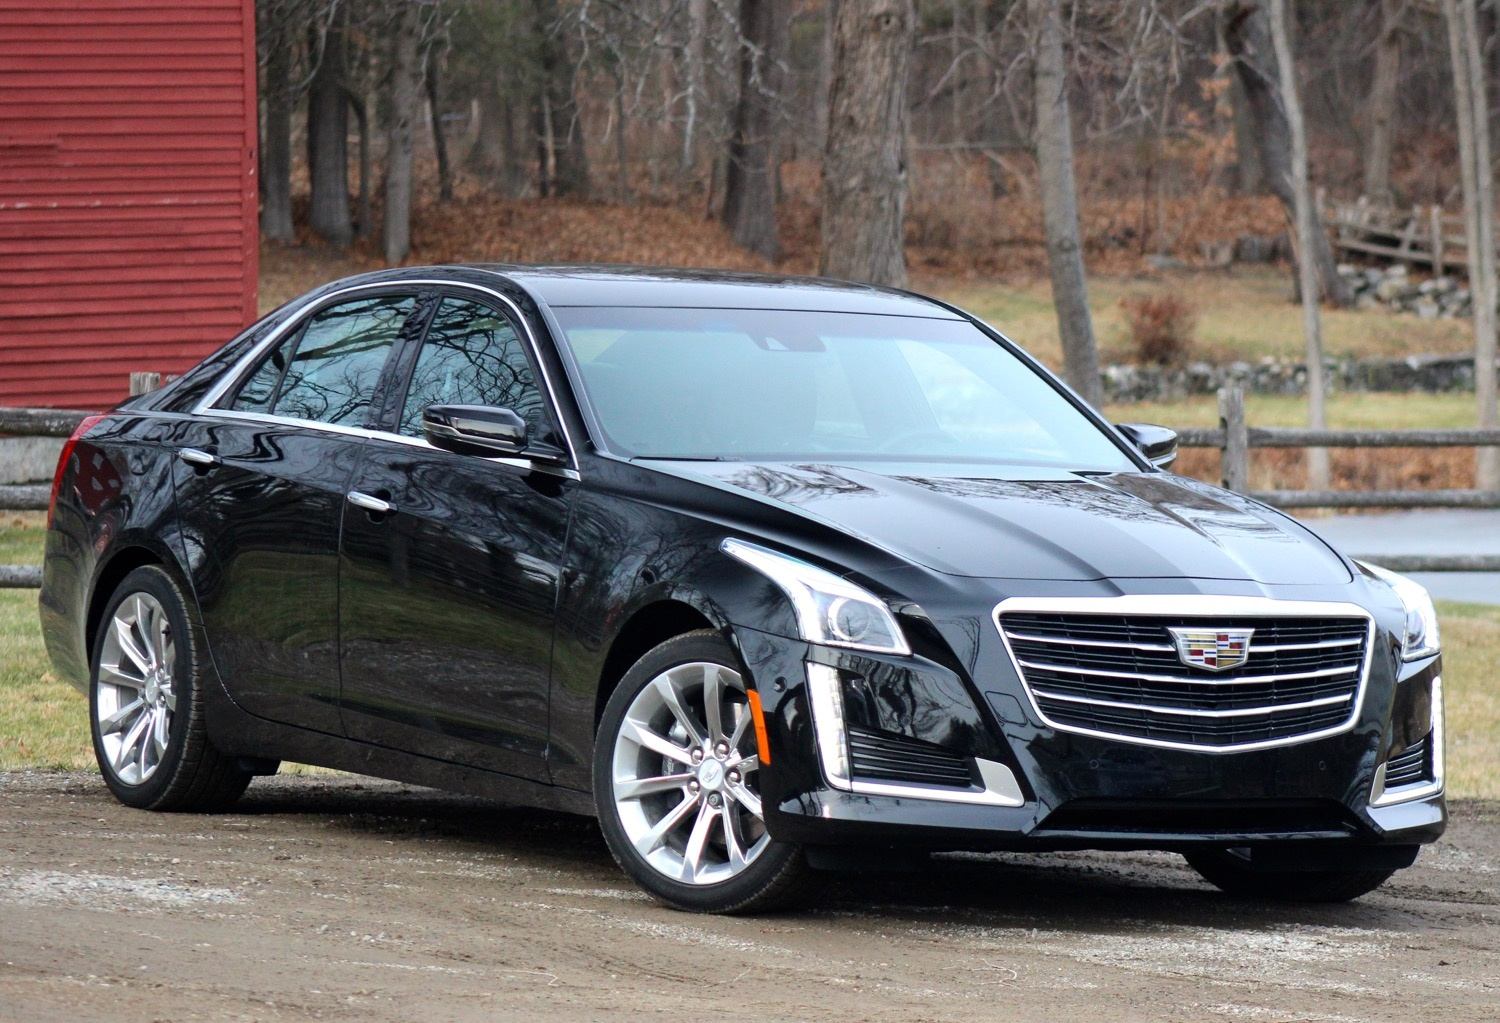 review reviews near perfect image notes car upgrade needs but article photo great cadillac an cts awd